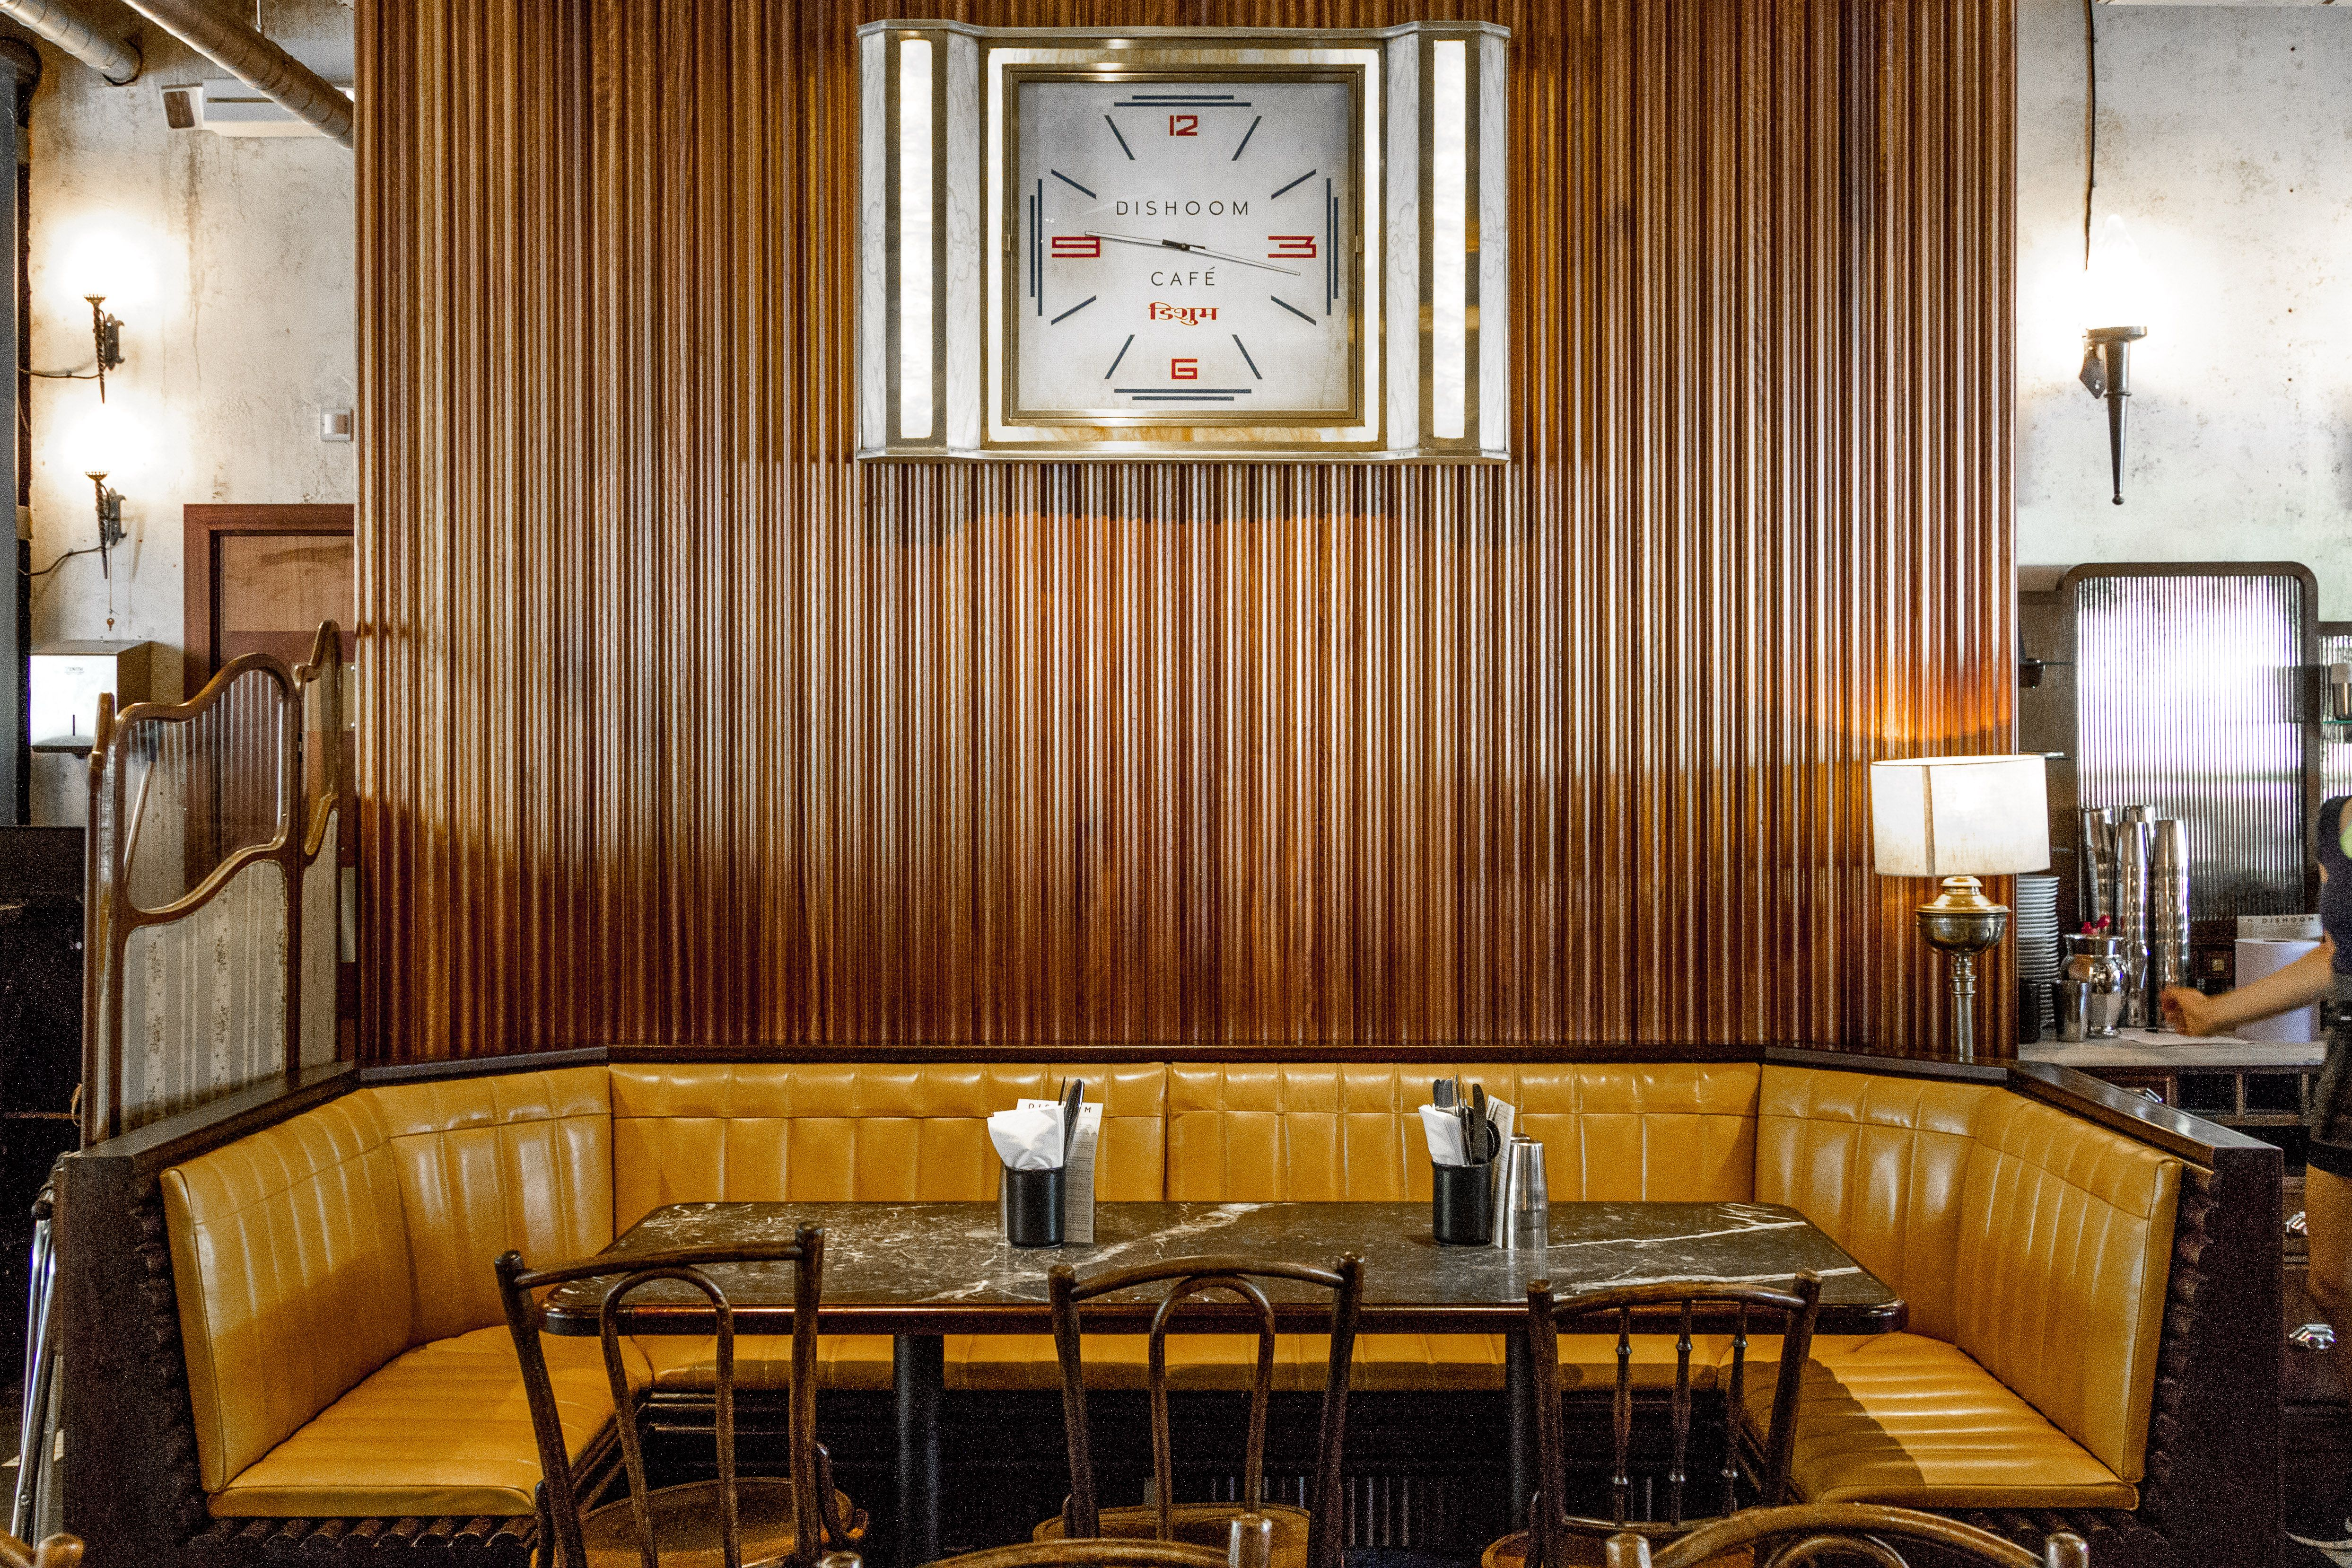 dishoom covent garden Google Search Booth seating